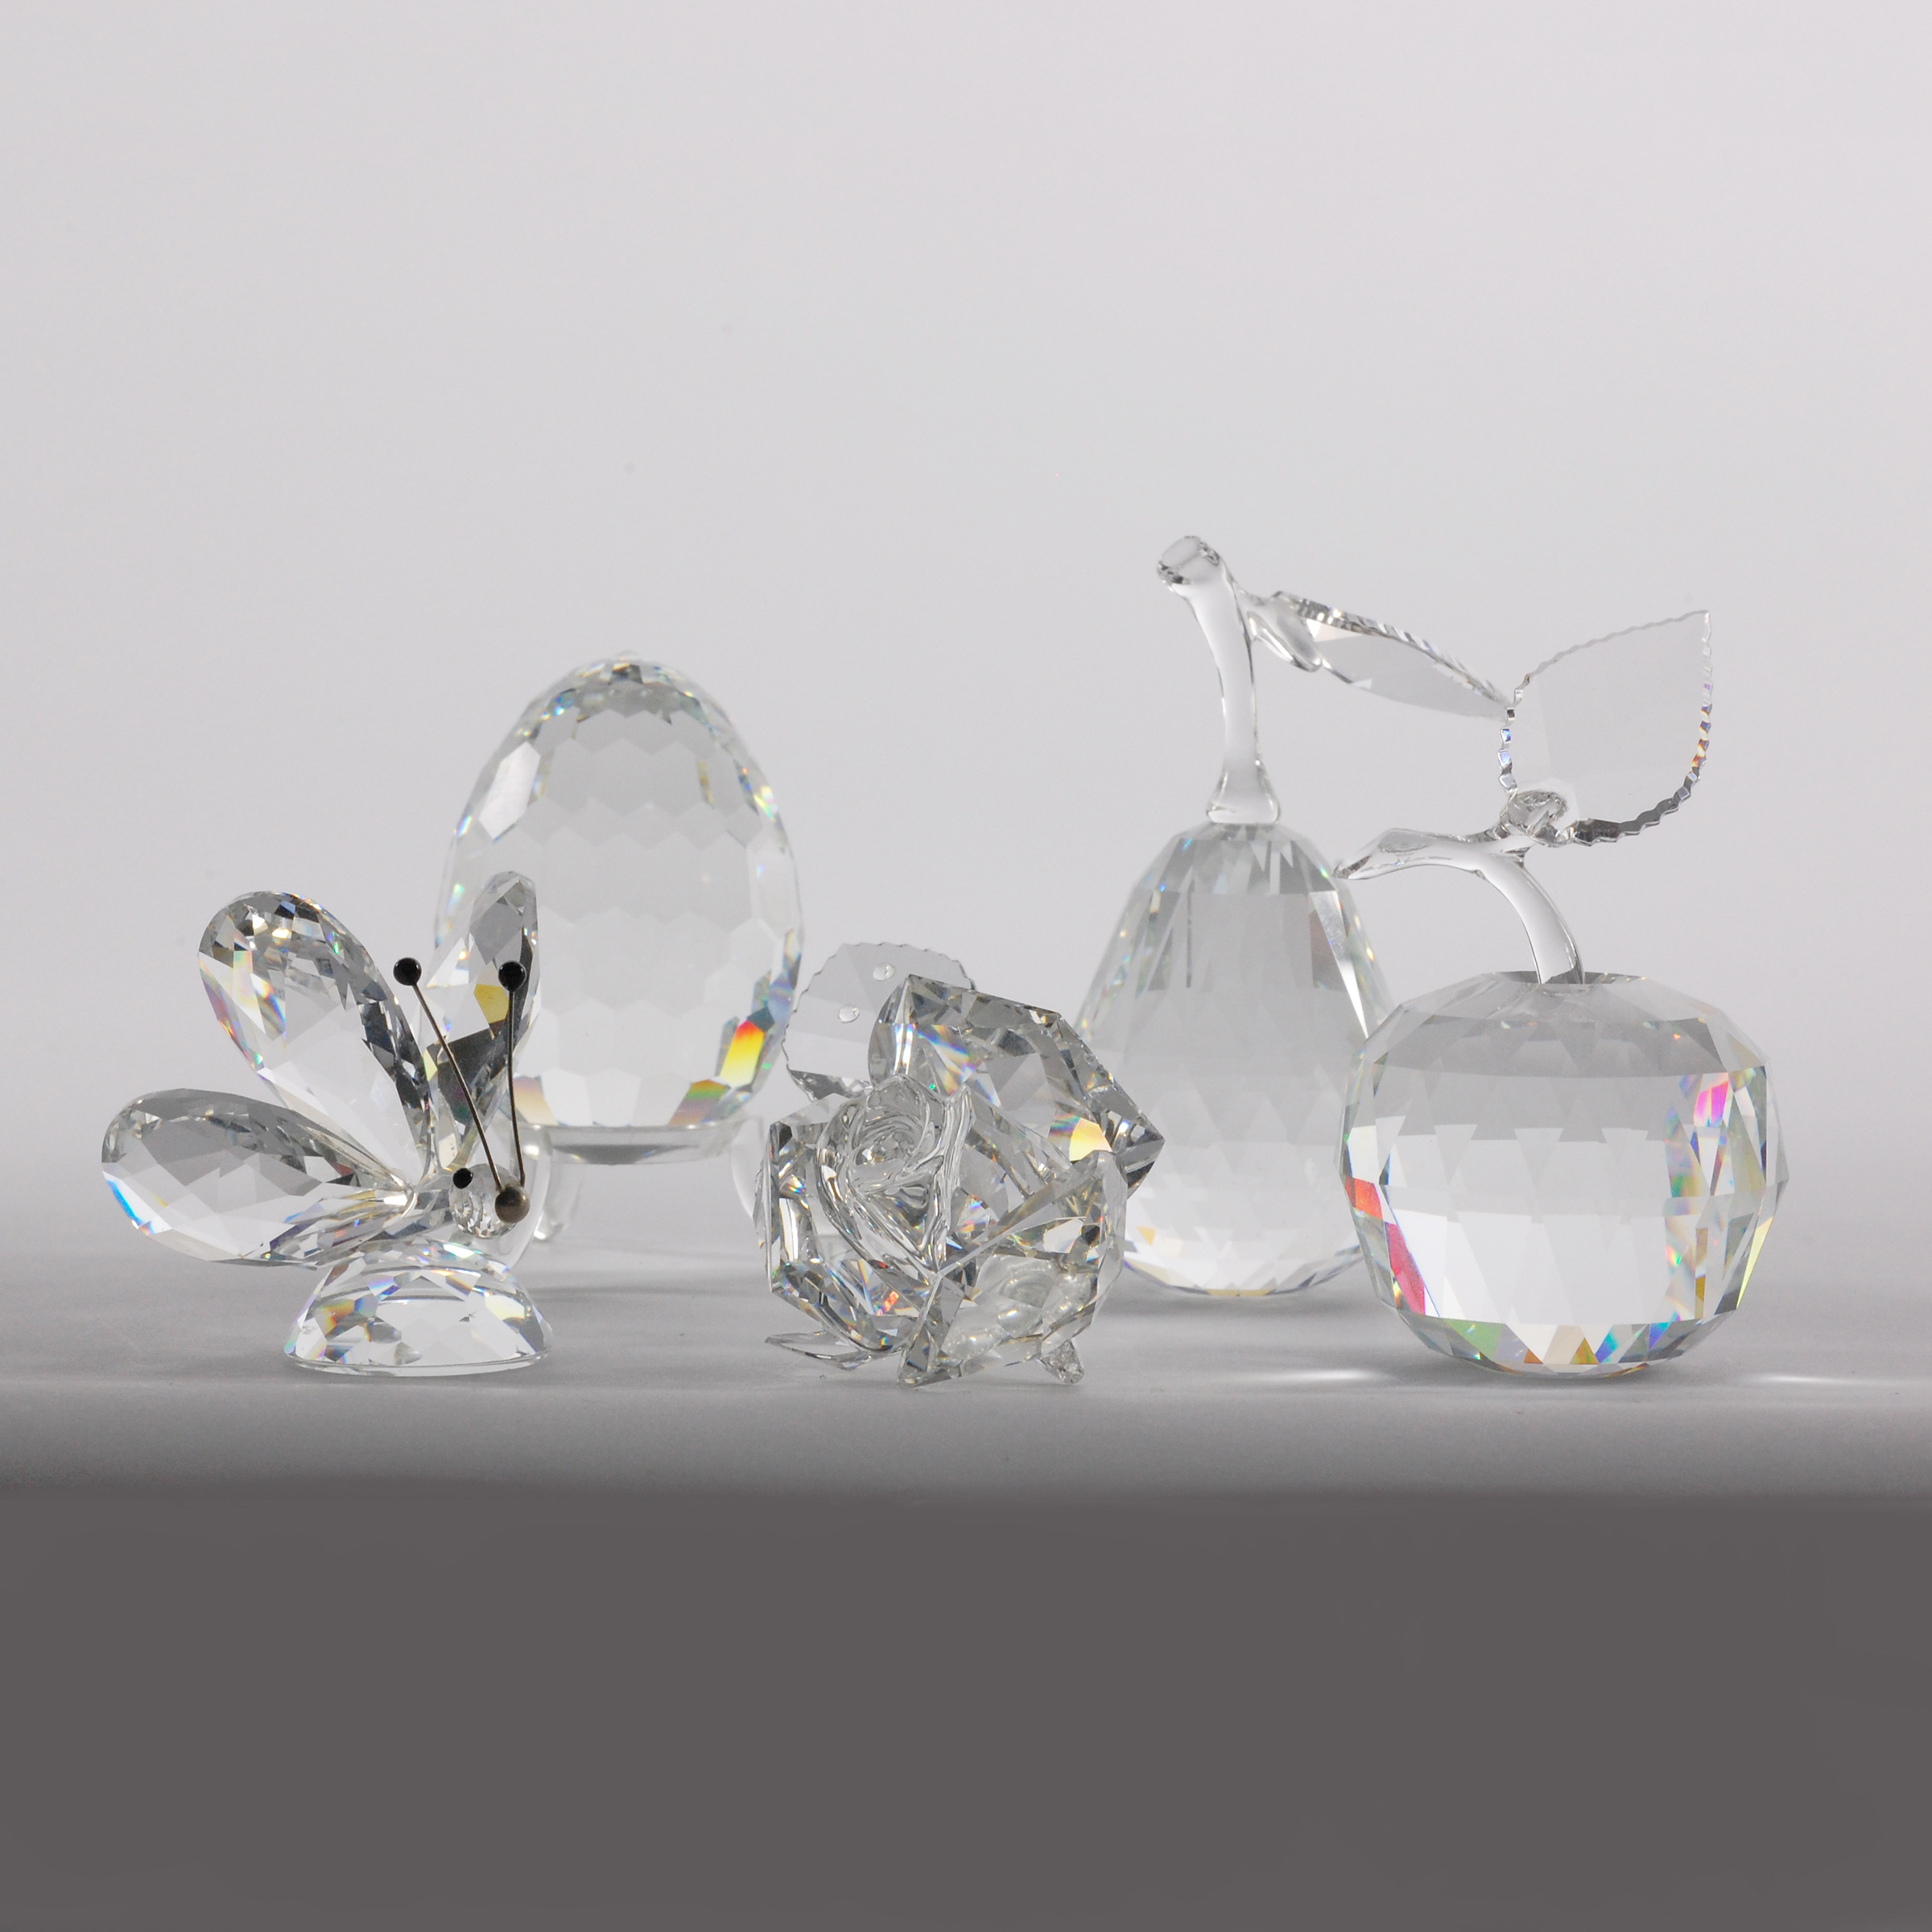 Five Swarovski Crystal Decorative Objects, late 20th/early 21st century